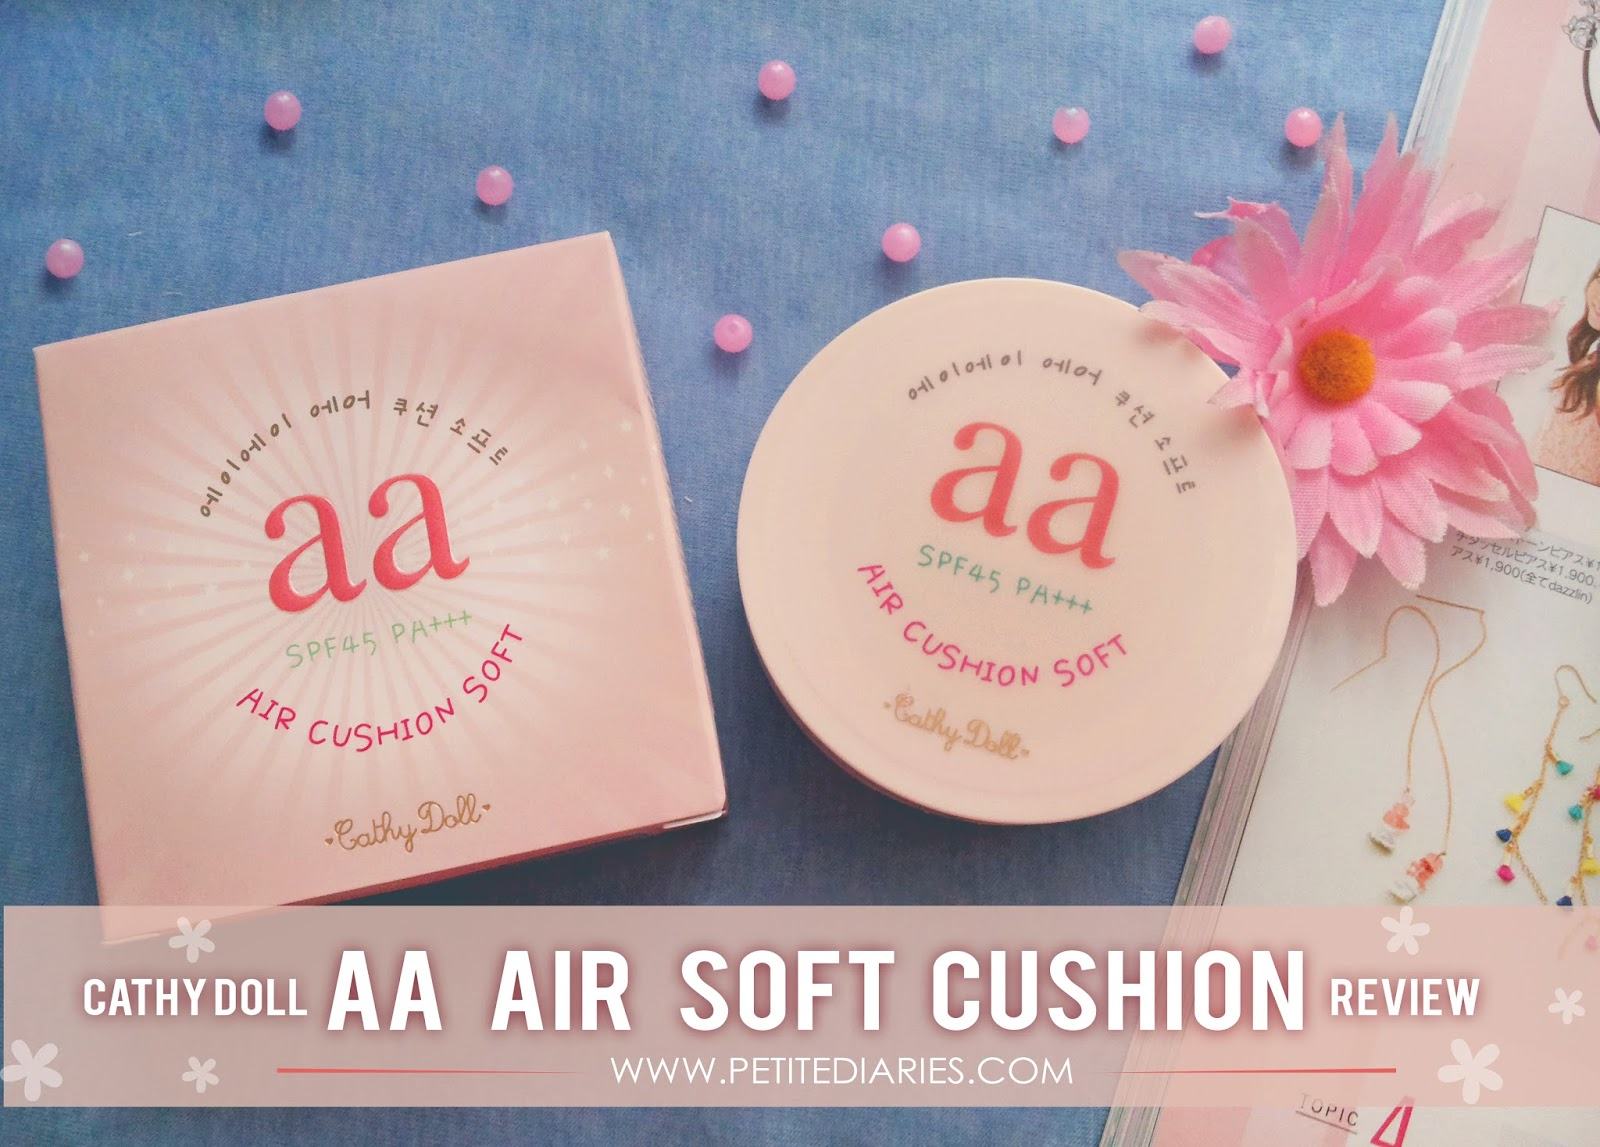 cathydoll aa air soft cushion spf 45 review